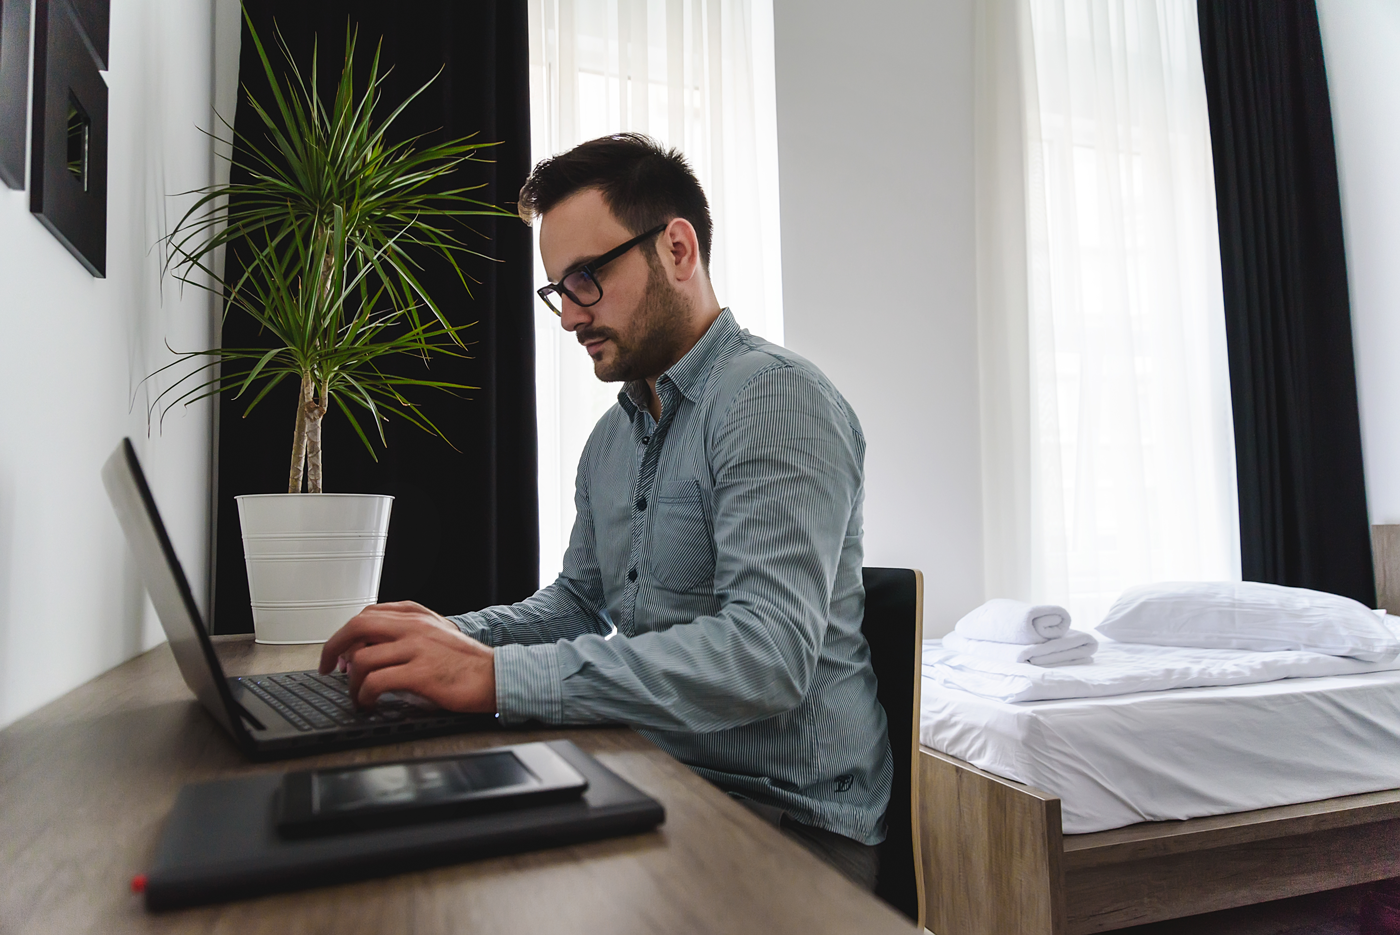 When travelling for business, it helps to find one of the best Regina hotels that offers a comfortable, spacious and practical in-room workspace.